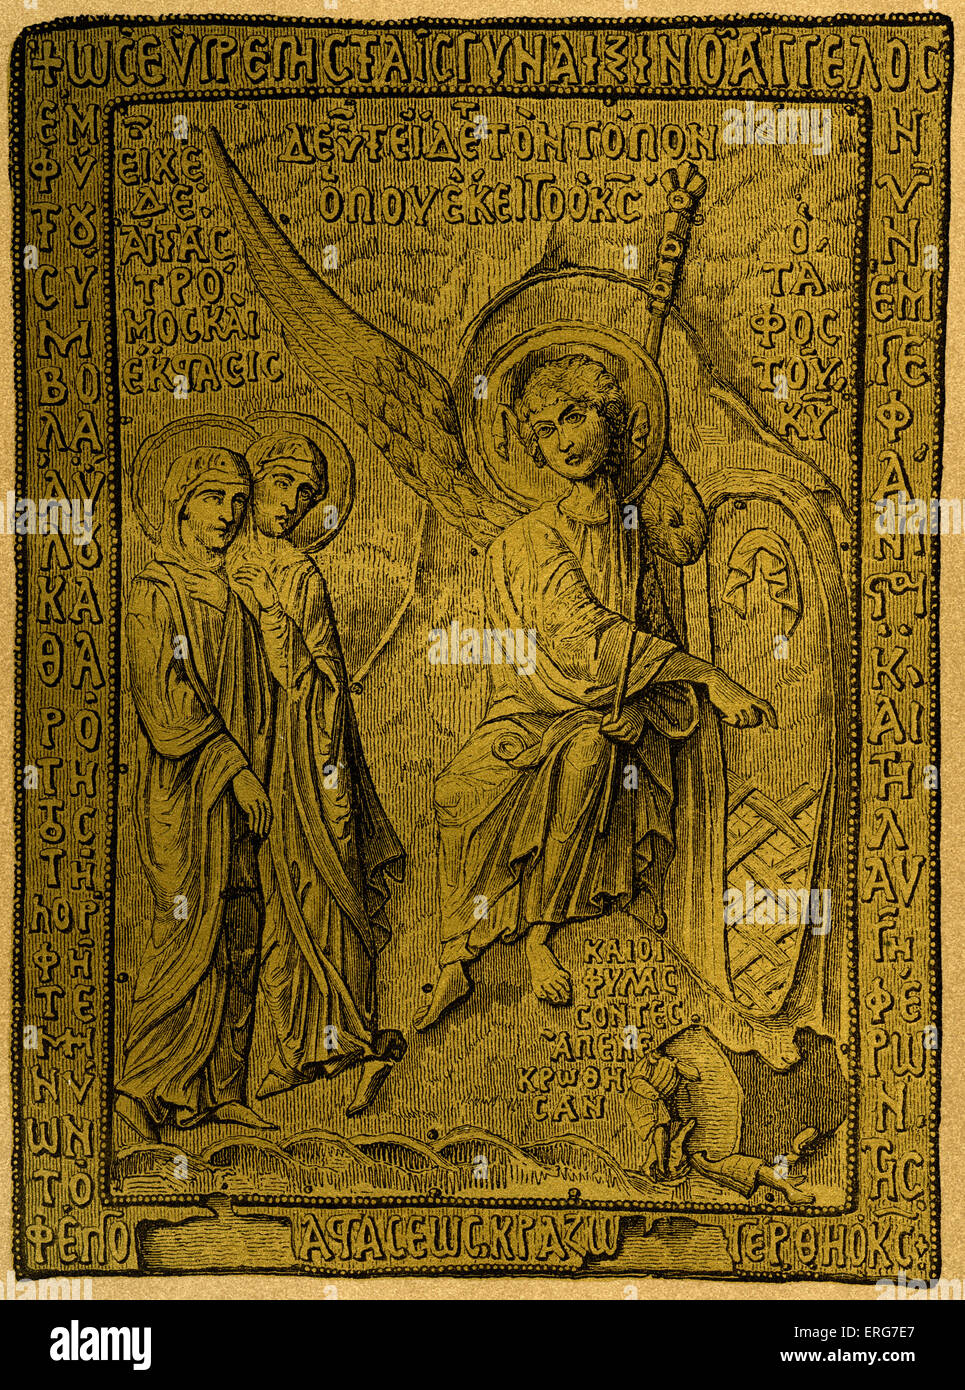 Panel of Book cover from the 9th Century. With Greek writing. Bas - relief in gold reponse. - Stock Image